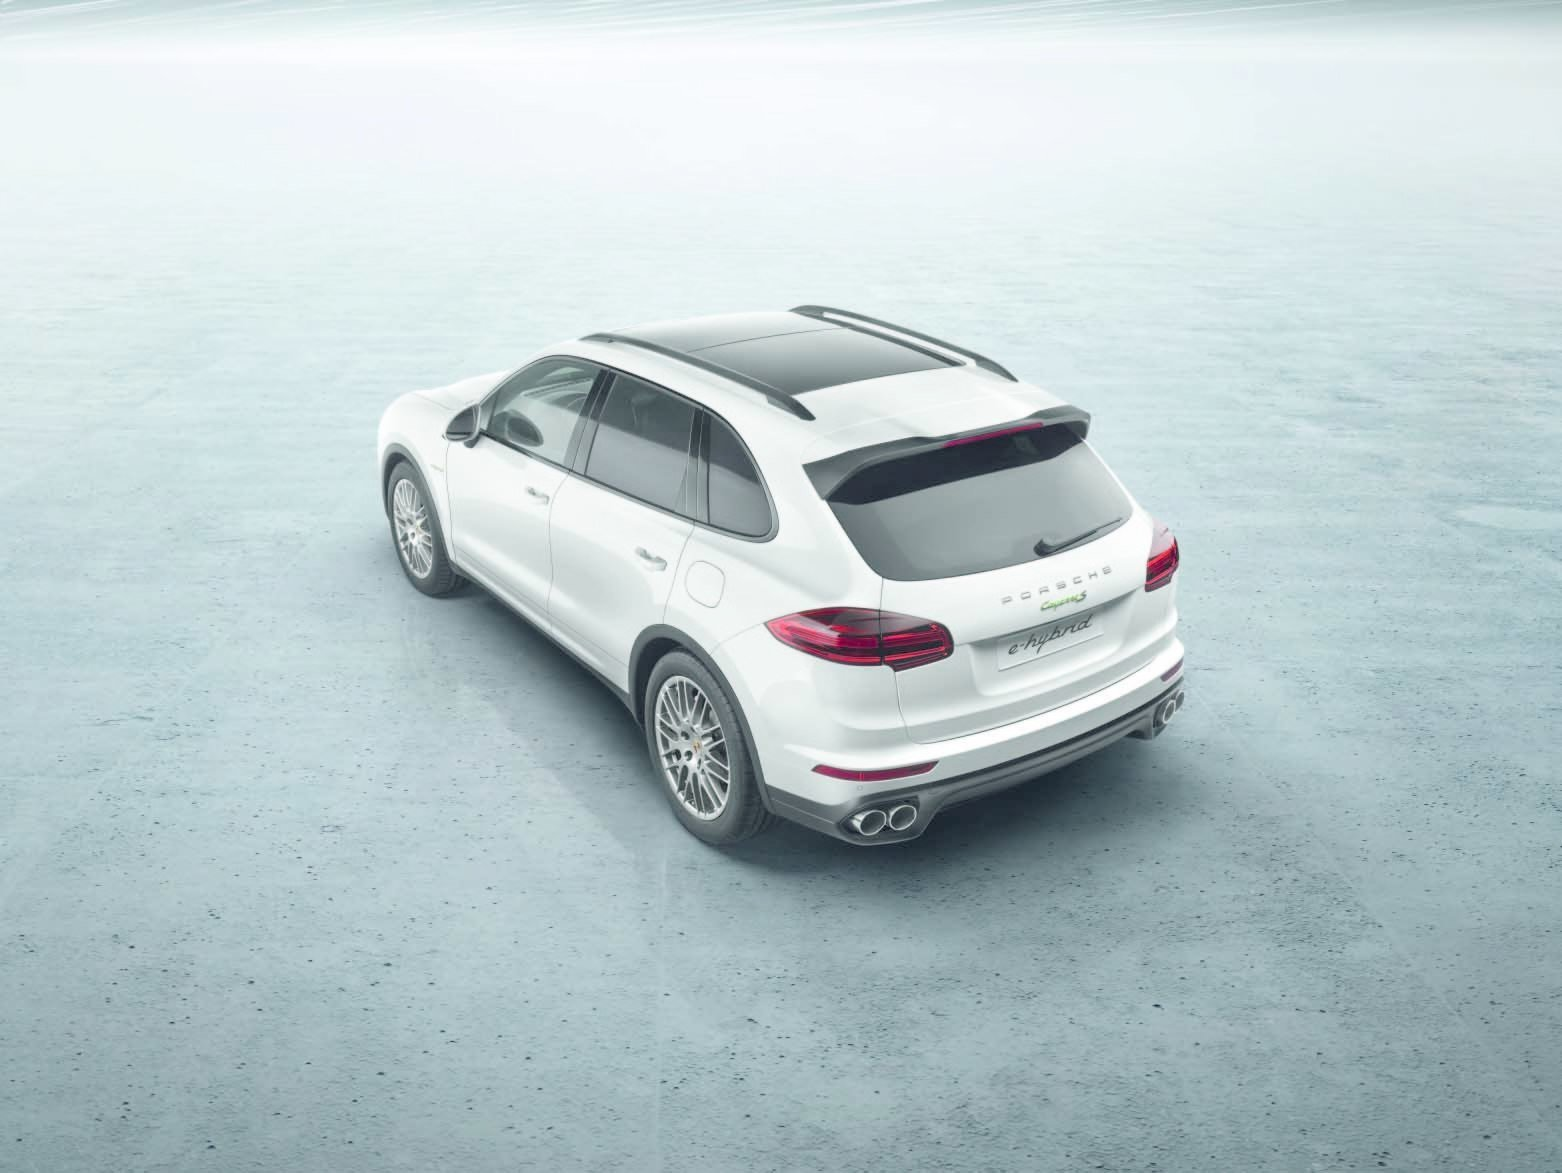 The most noticeable update to the Cayenne's form is the rear. The tailgate takes the shape of the rear lights, adding breadth to the vehicle.  Photo 3 of 8 in New Porsche Cayenne Editions Promise Greater Efficiency Without Compromising Performance